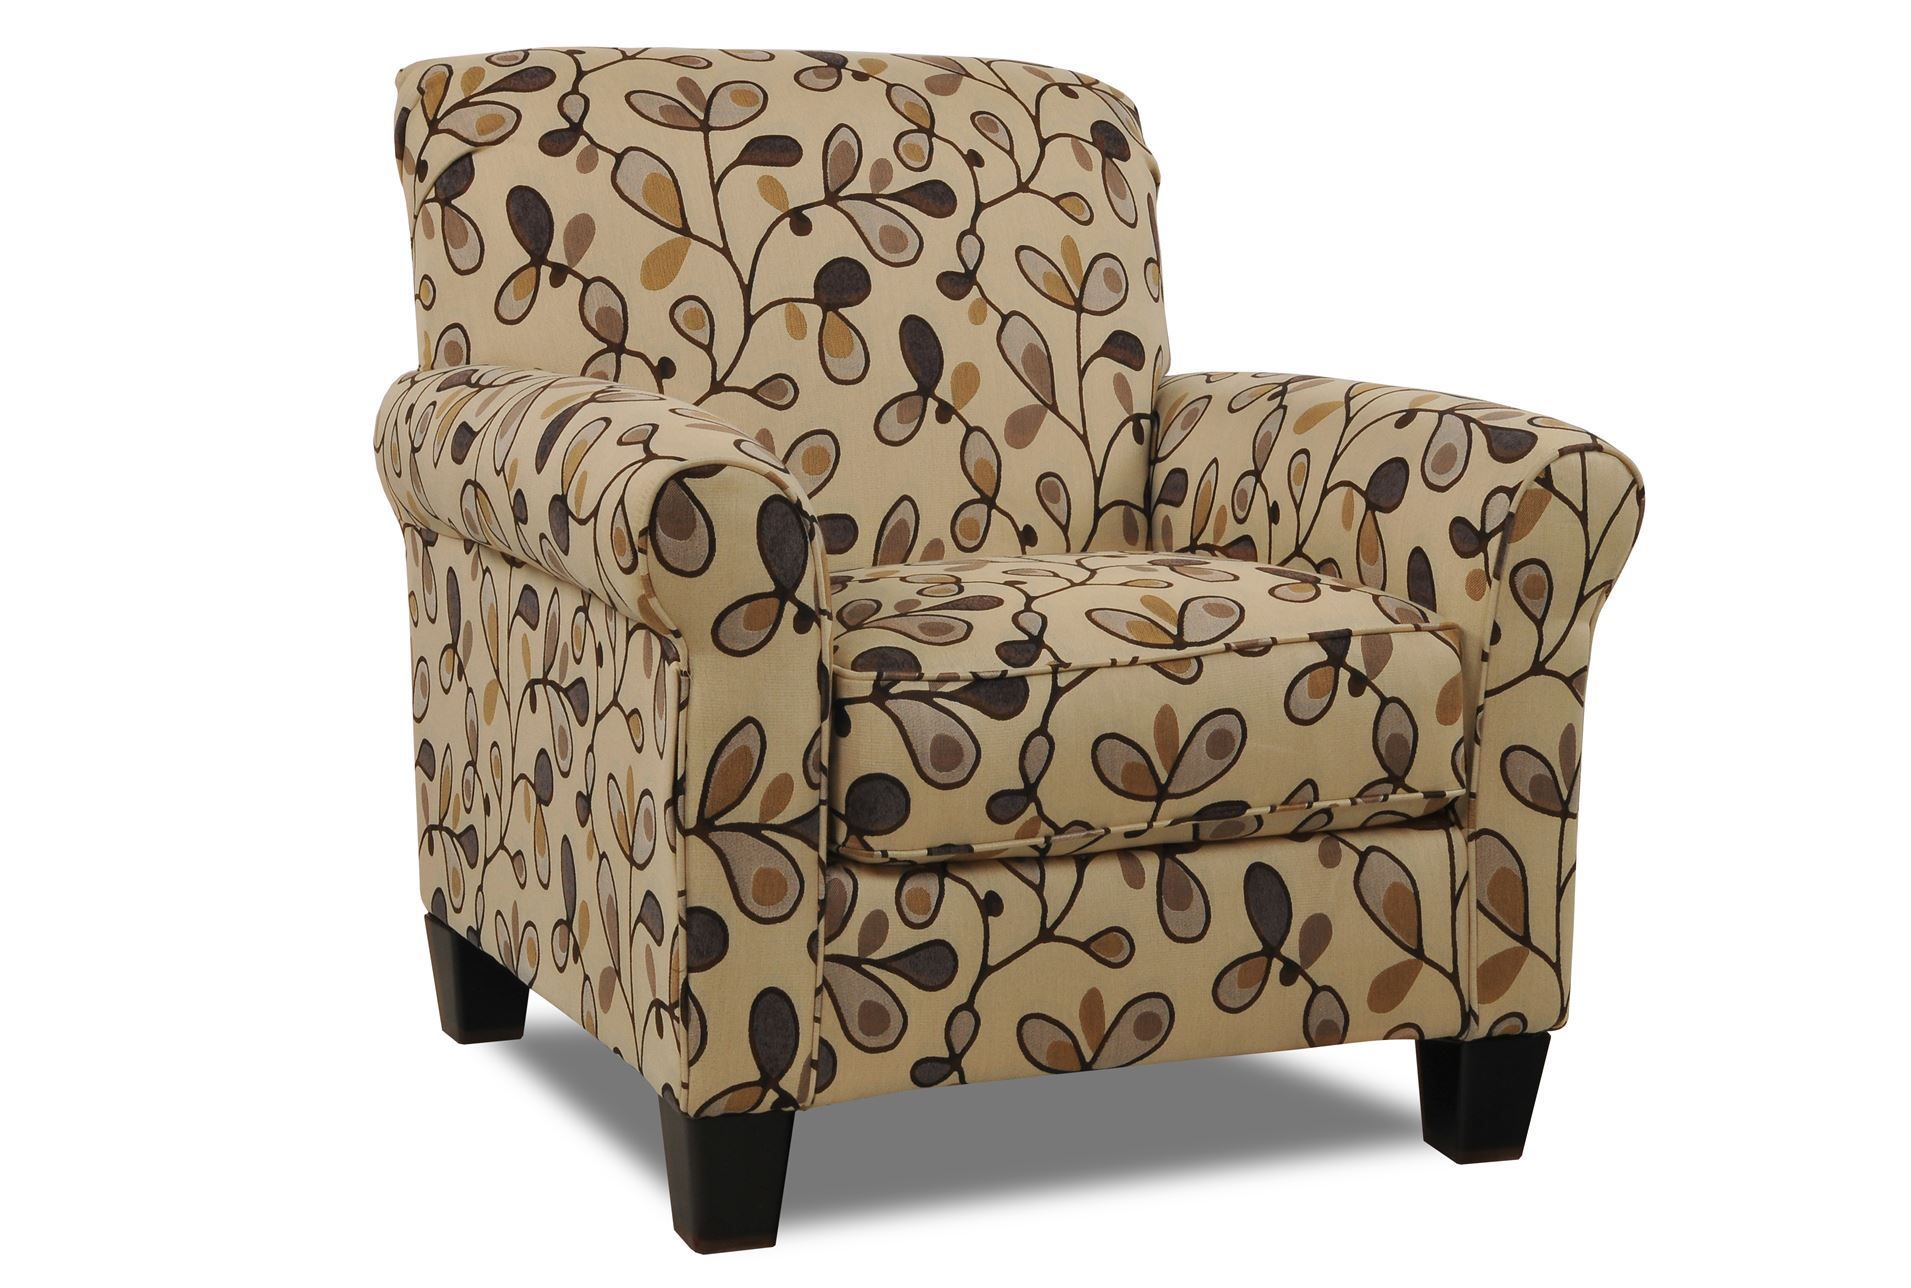 Gusti Accent Chair Comfy And Cute!!!